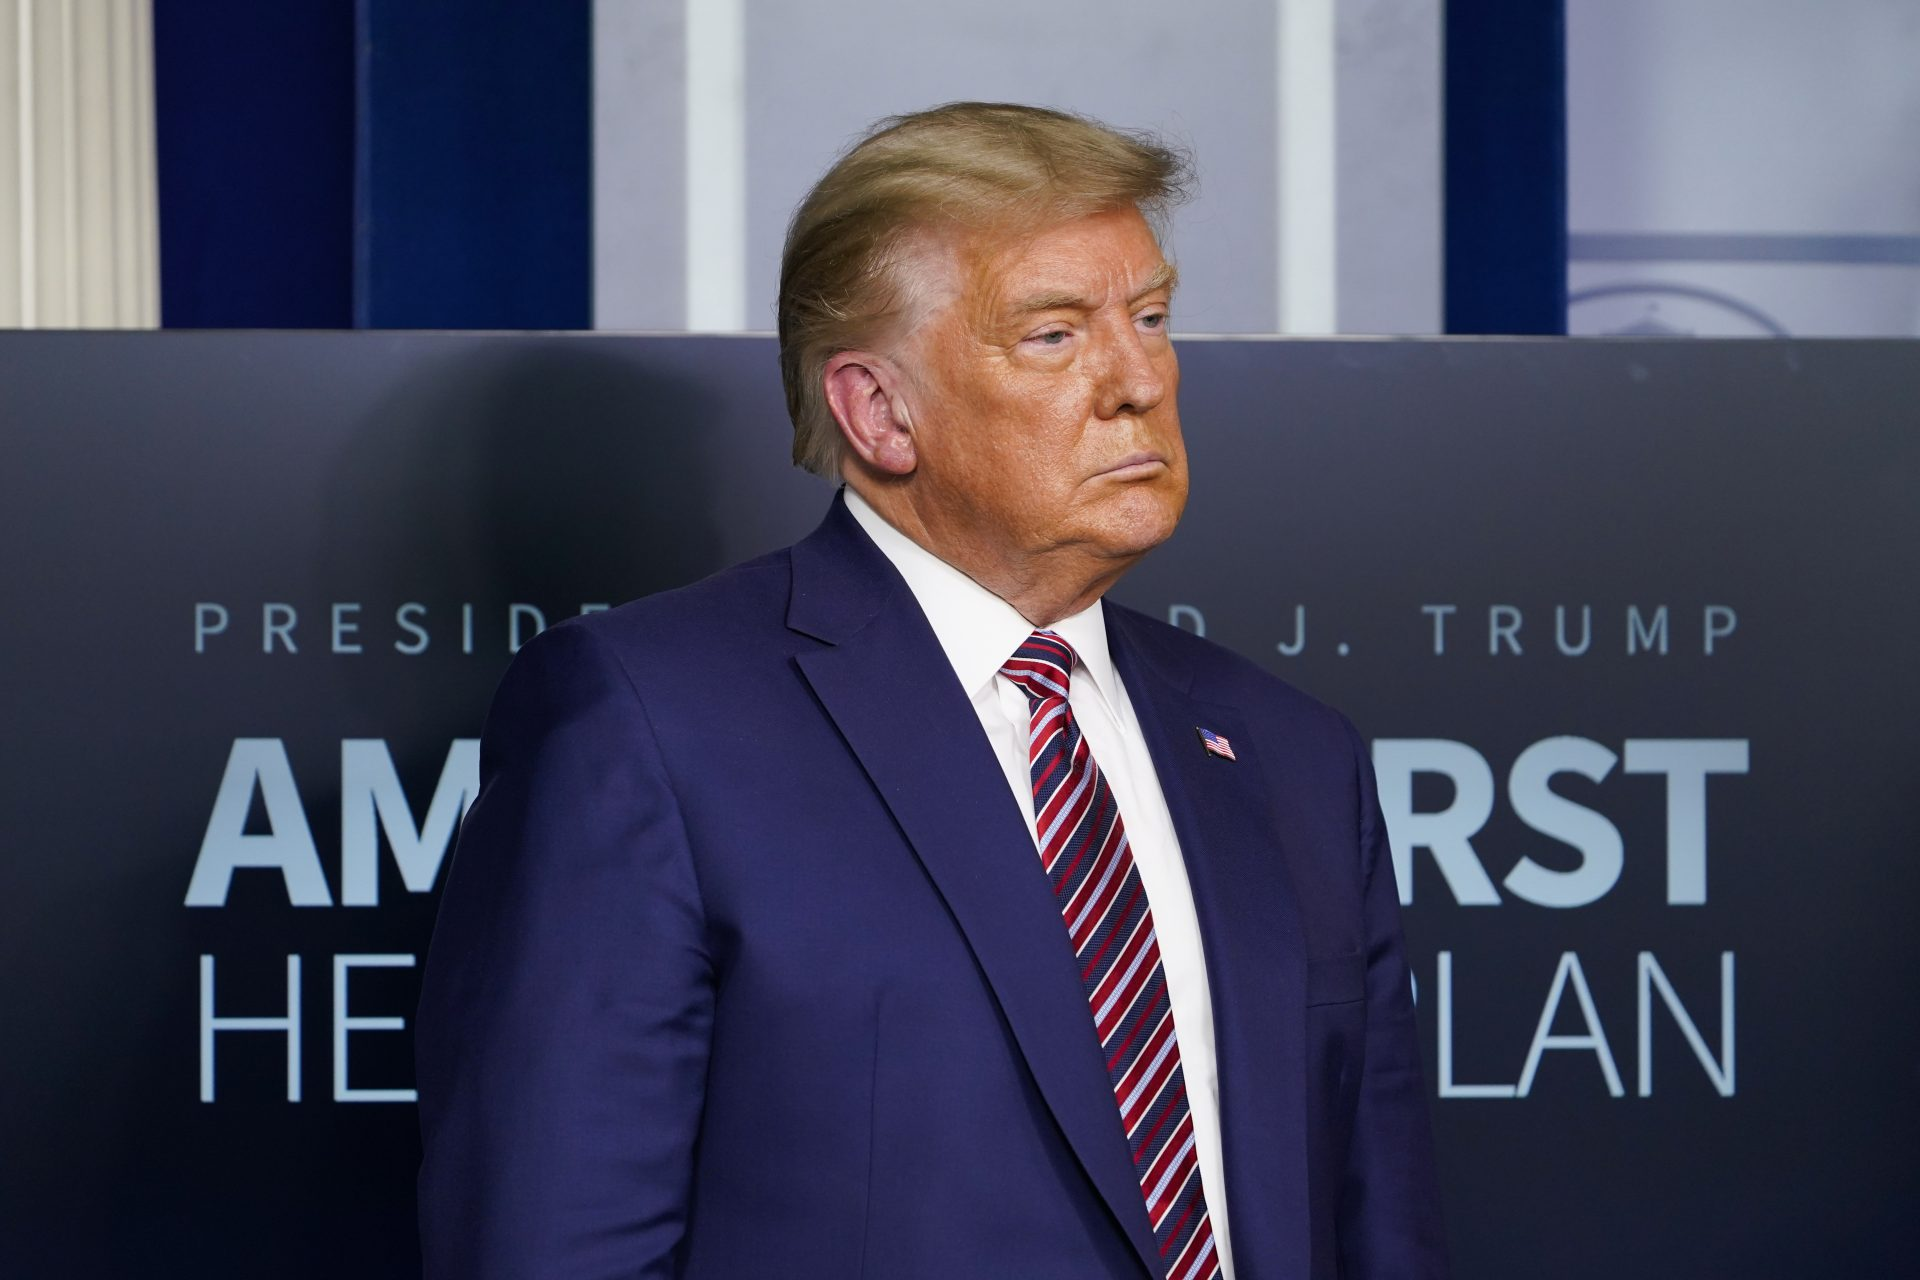 President Donald Trump listens during a news conference in the briefing room at the White House in Washington on Nov. 20, 2020.